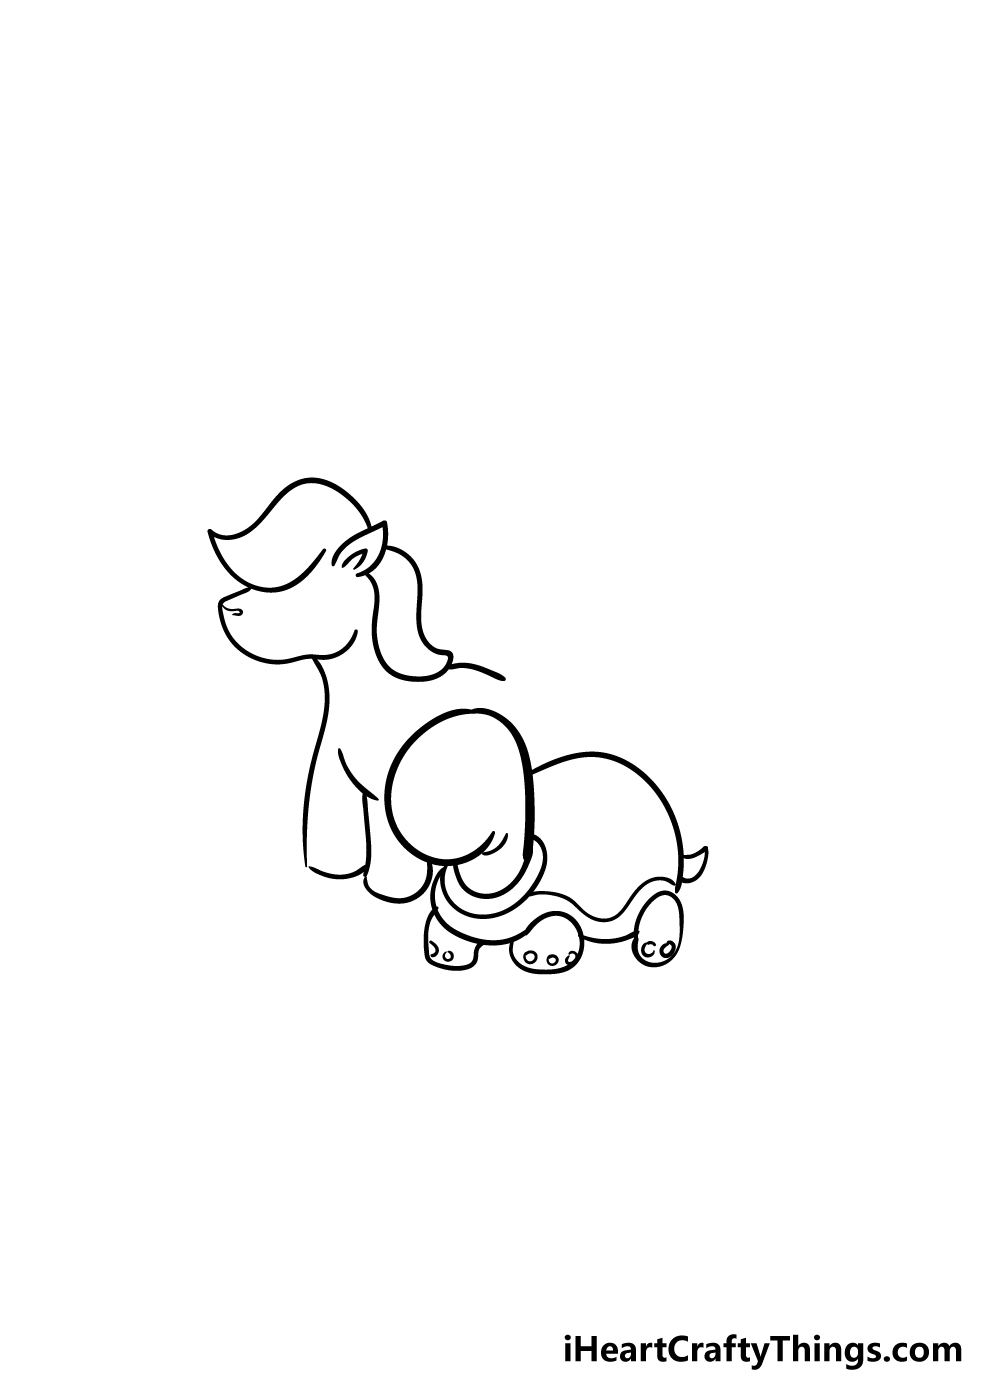 cute animals drawing step 4